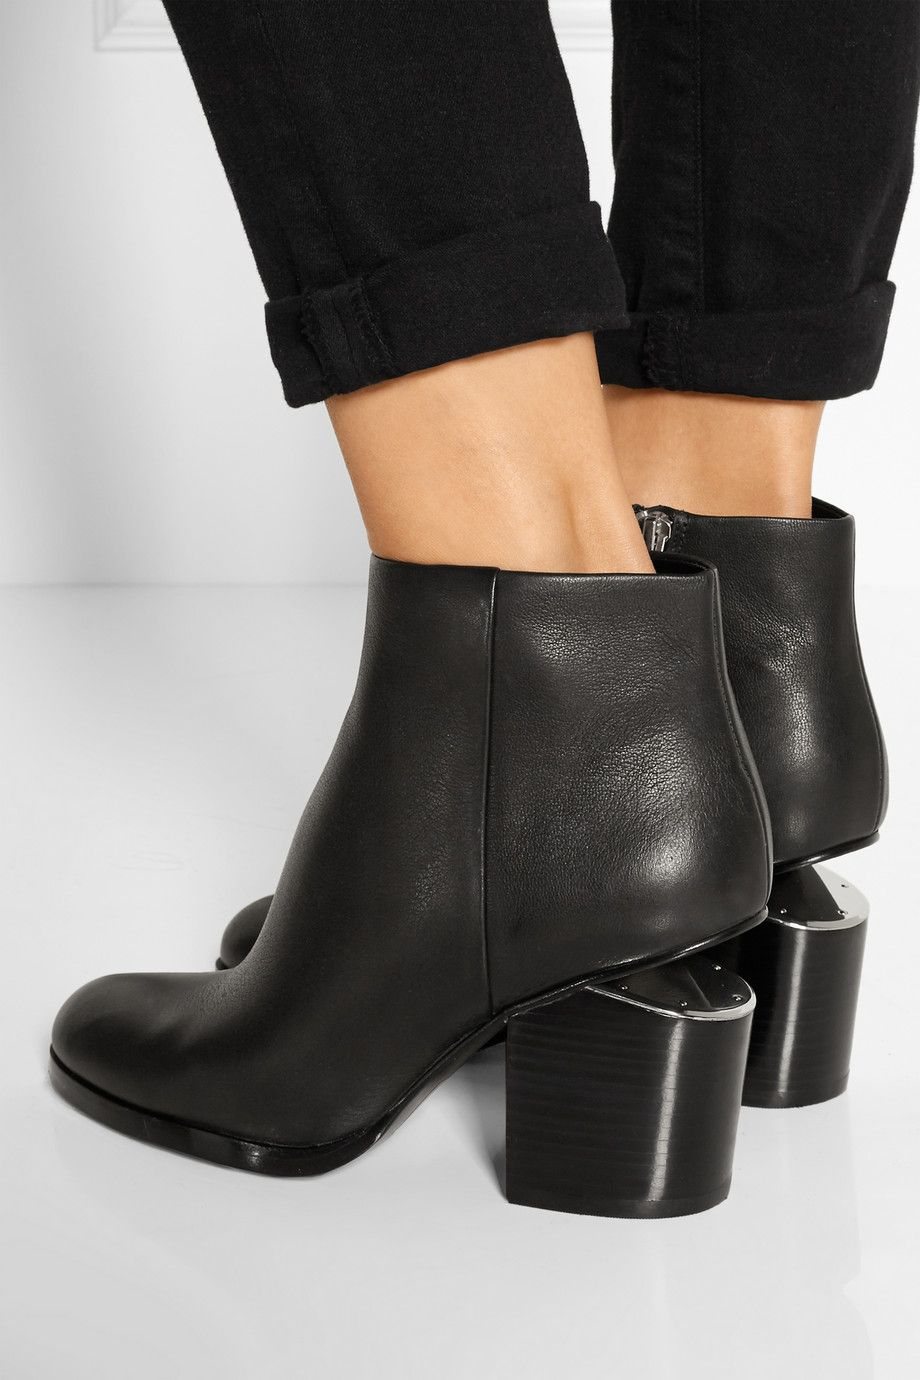 Alexander Wang Gabi Cutout Leather Ankle Boots Leather